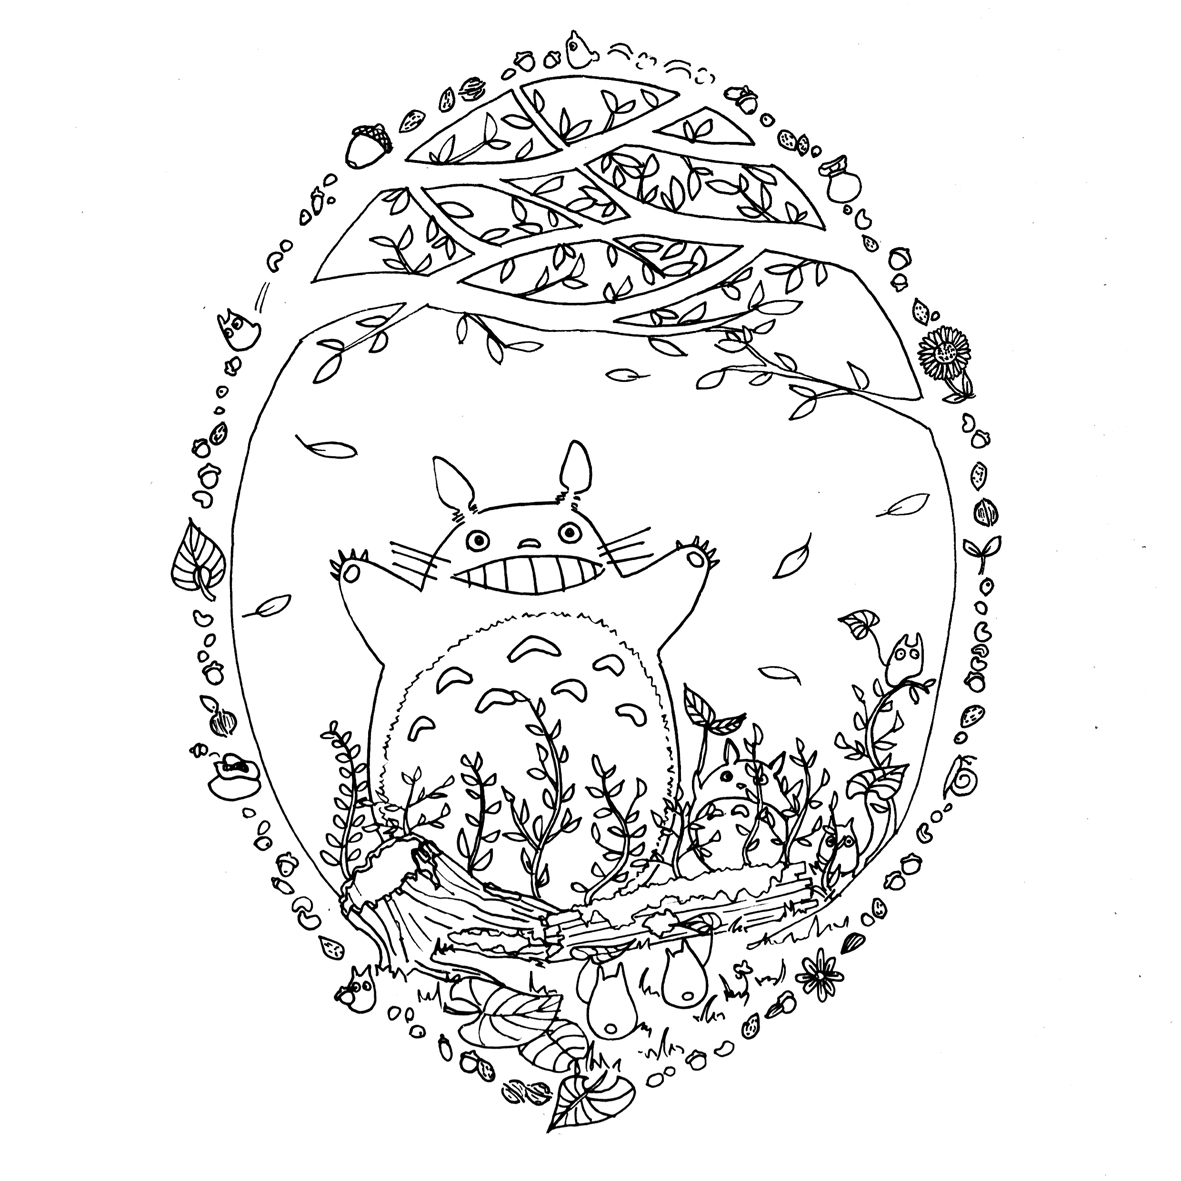 Chocobo Coloring Page